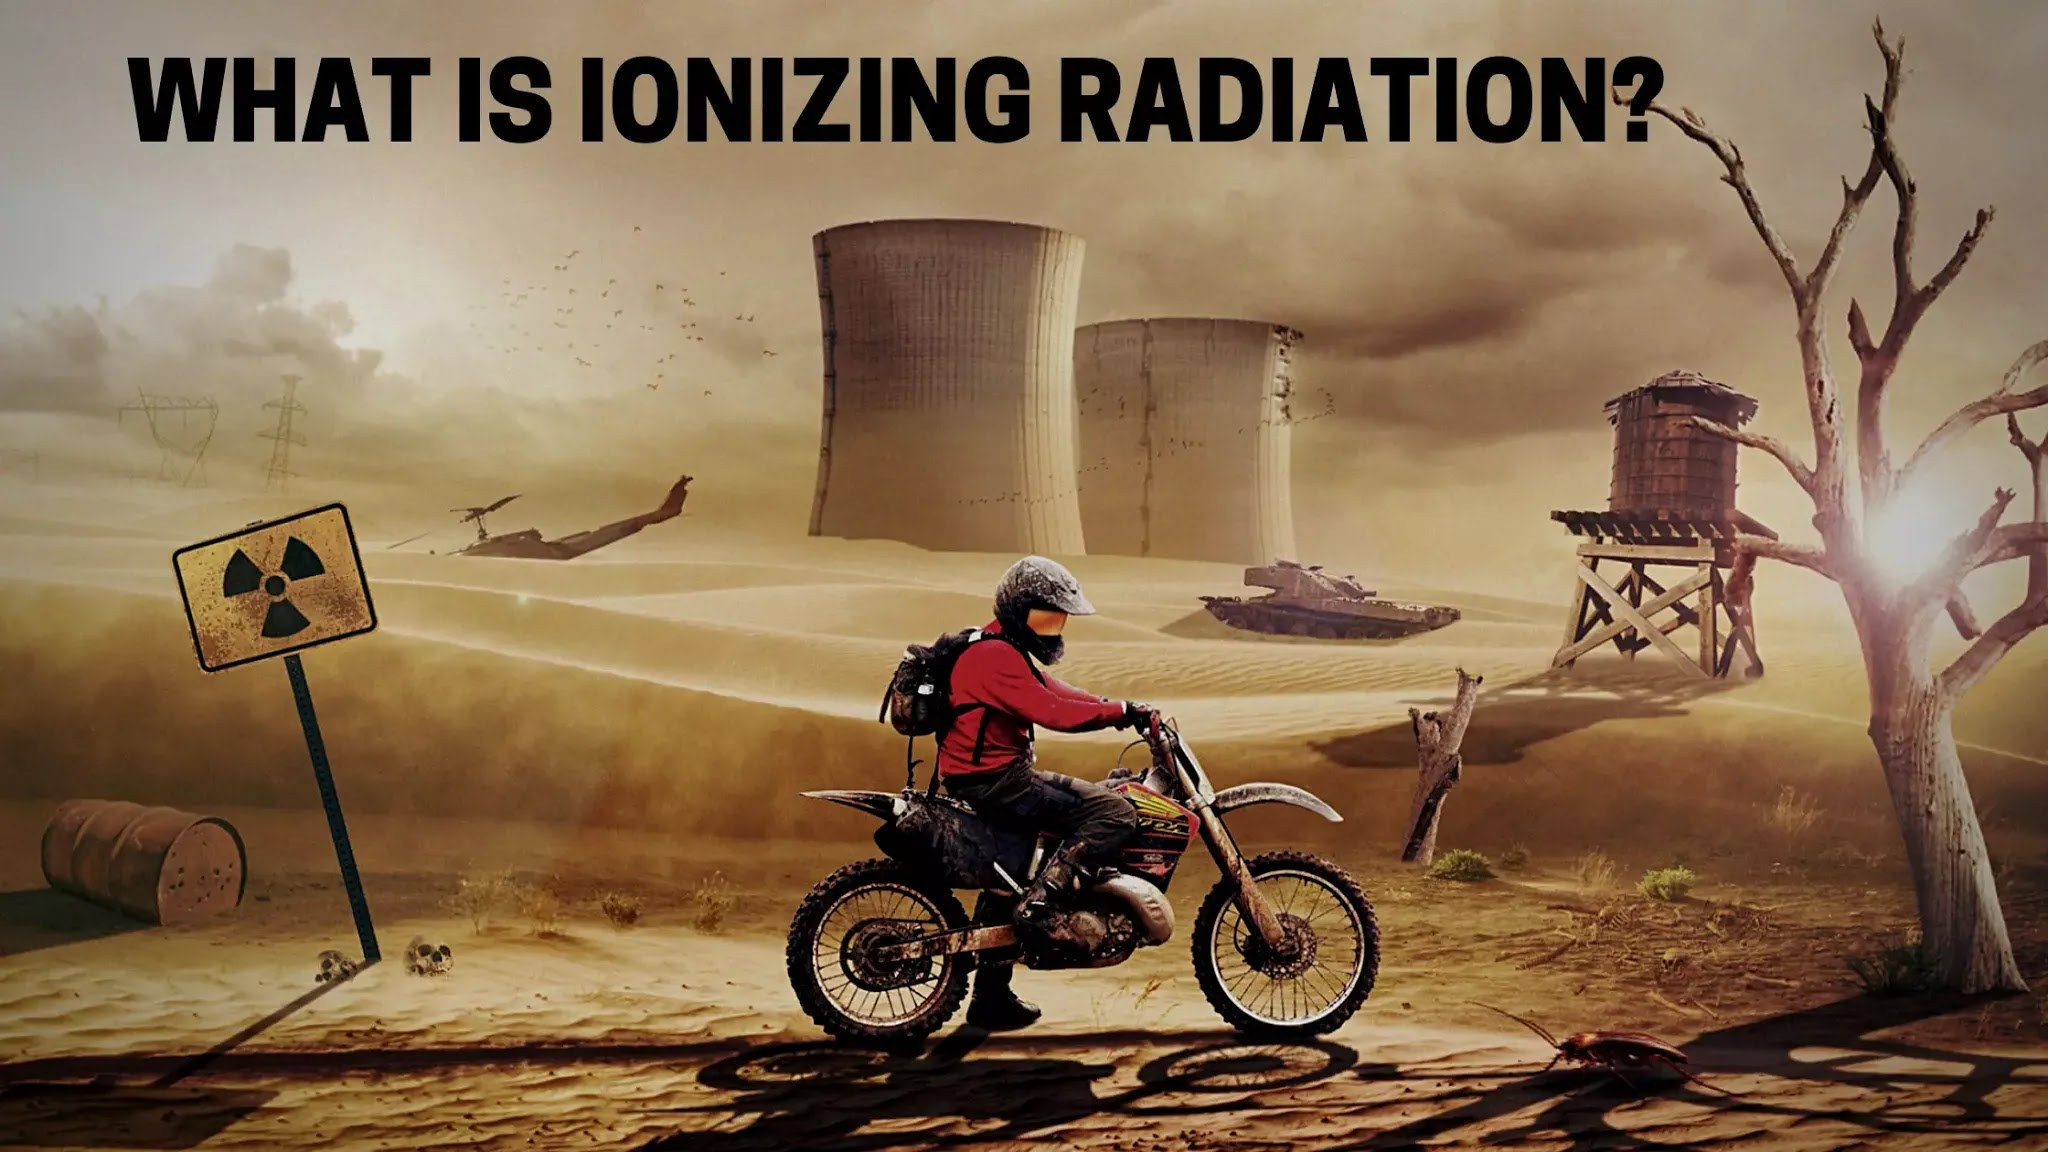 What exactly is radiation?, what is radiation?, What is radiation for Kids?, What is radiation in simple words?, What is radiation heat transfer?, Types of radiation?, What is radiation therapy?, What is radiation and why is it bad?, What are the 3 types of radiation?, what is ionizing Radiations